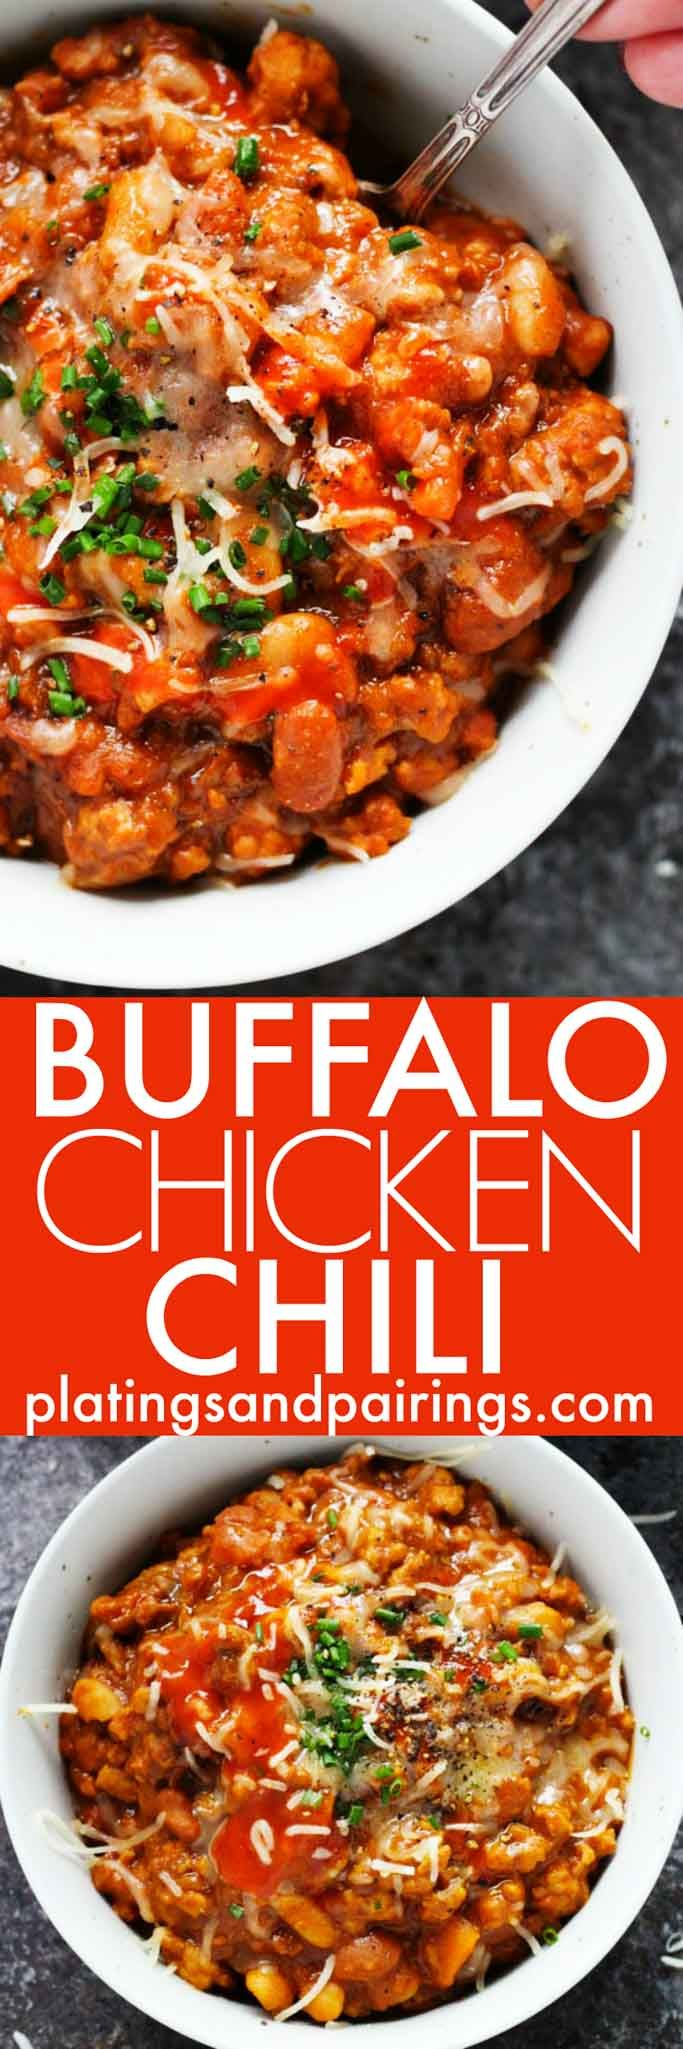 This Buffalo Chicken Chili features all the flavors of your favorite finger food in a spicy chili. It's a new healthy and hearty way to enjoy buffalo wings! | platingsandpairings.com